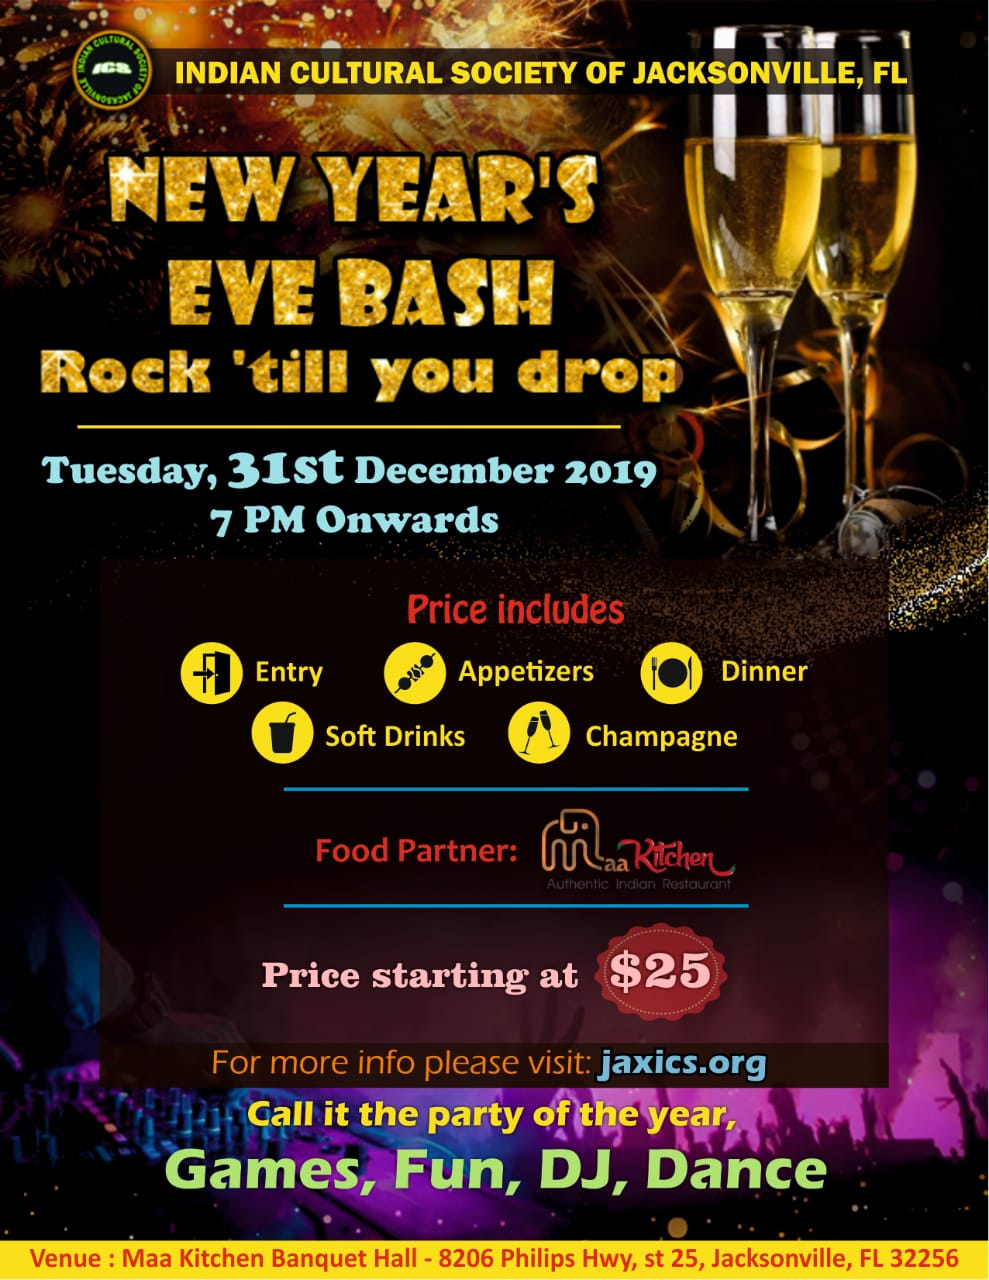 ICS New Year's Eve Bash 2091 flyer